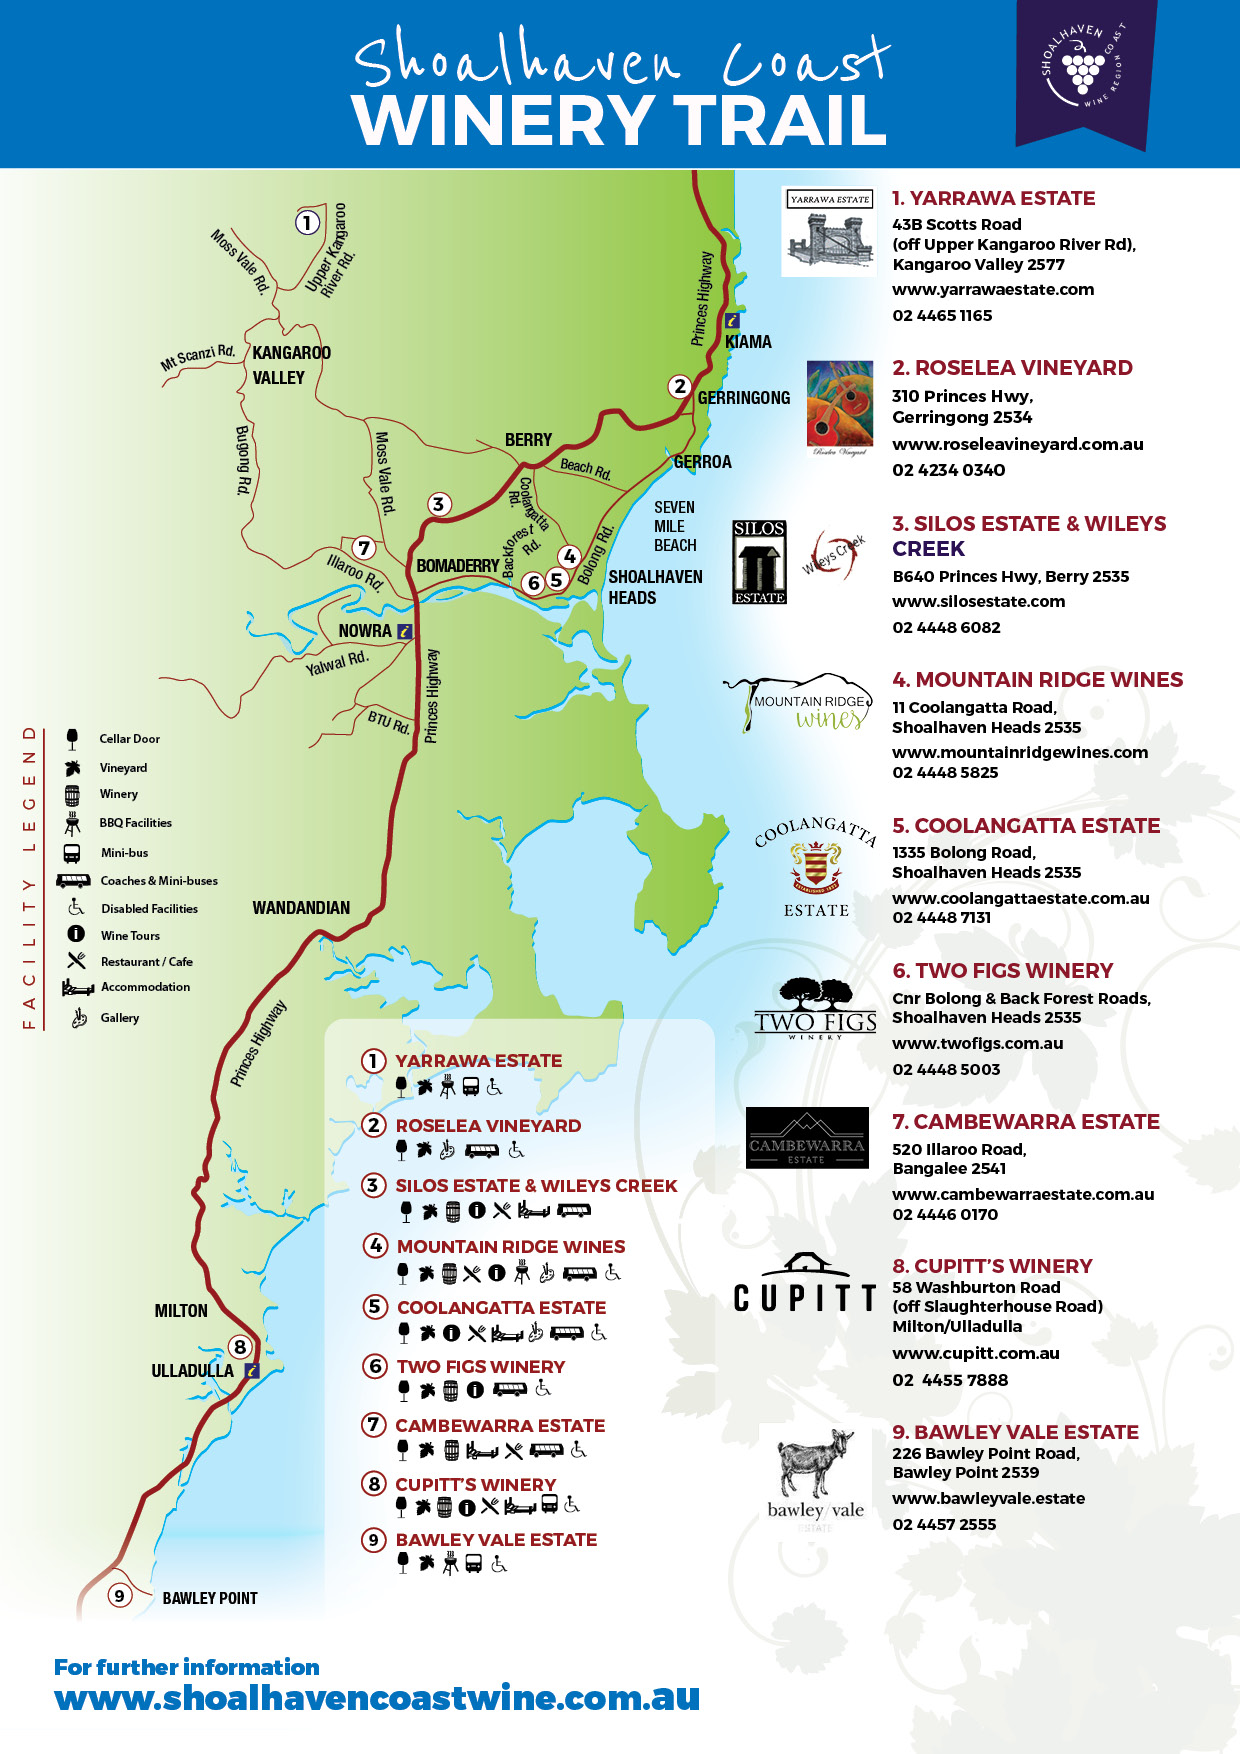 Shoalhaven Coast Wine Trail